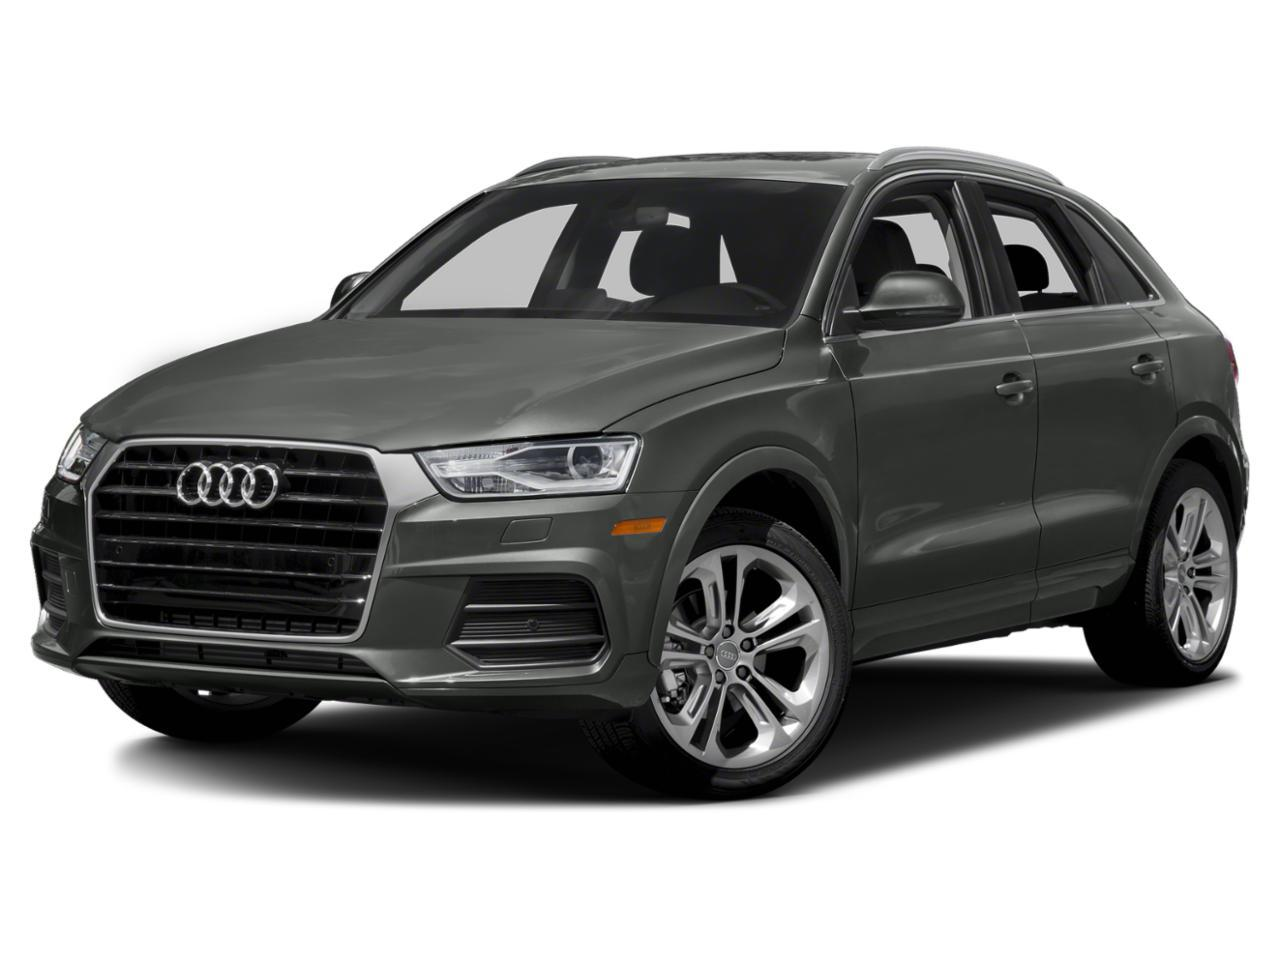 2018 Audi Q3 Vehicle Photo in Cape May Court House, NJ 08210